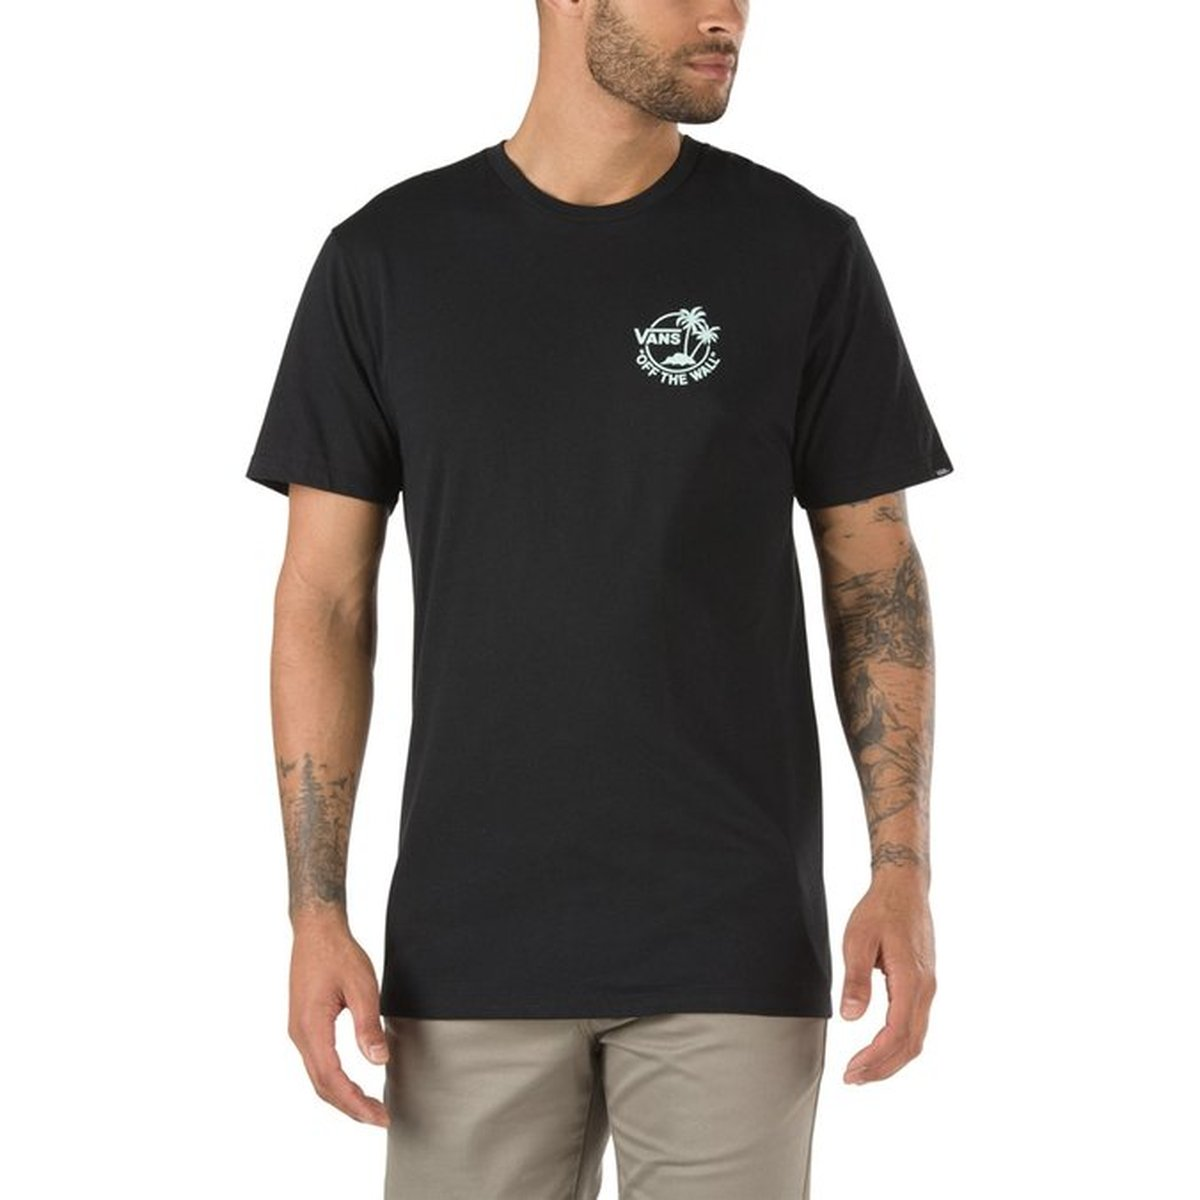 CAMISETA VANS MINI DUAL PALM III BLACK-BAY